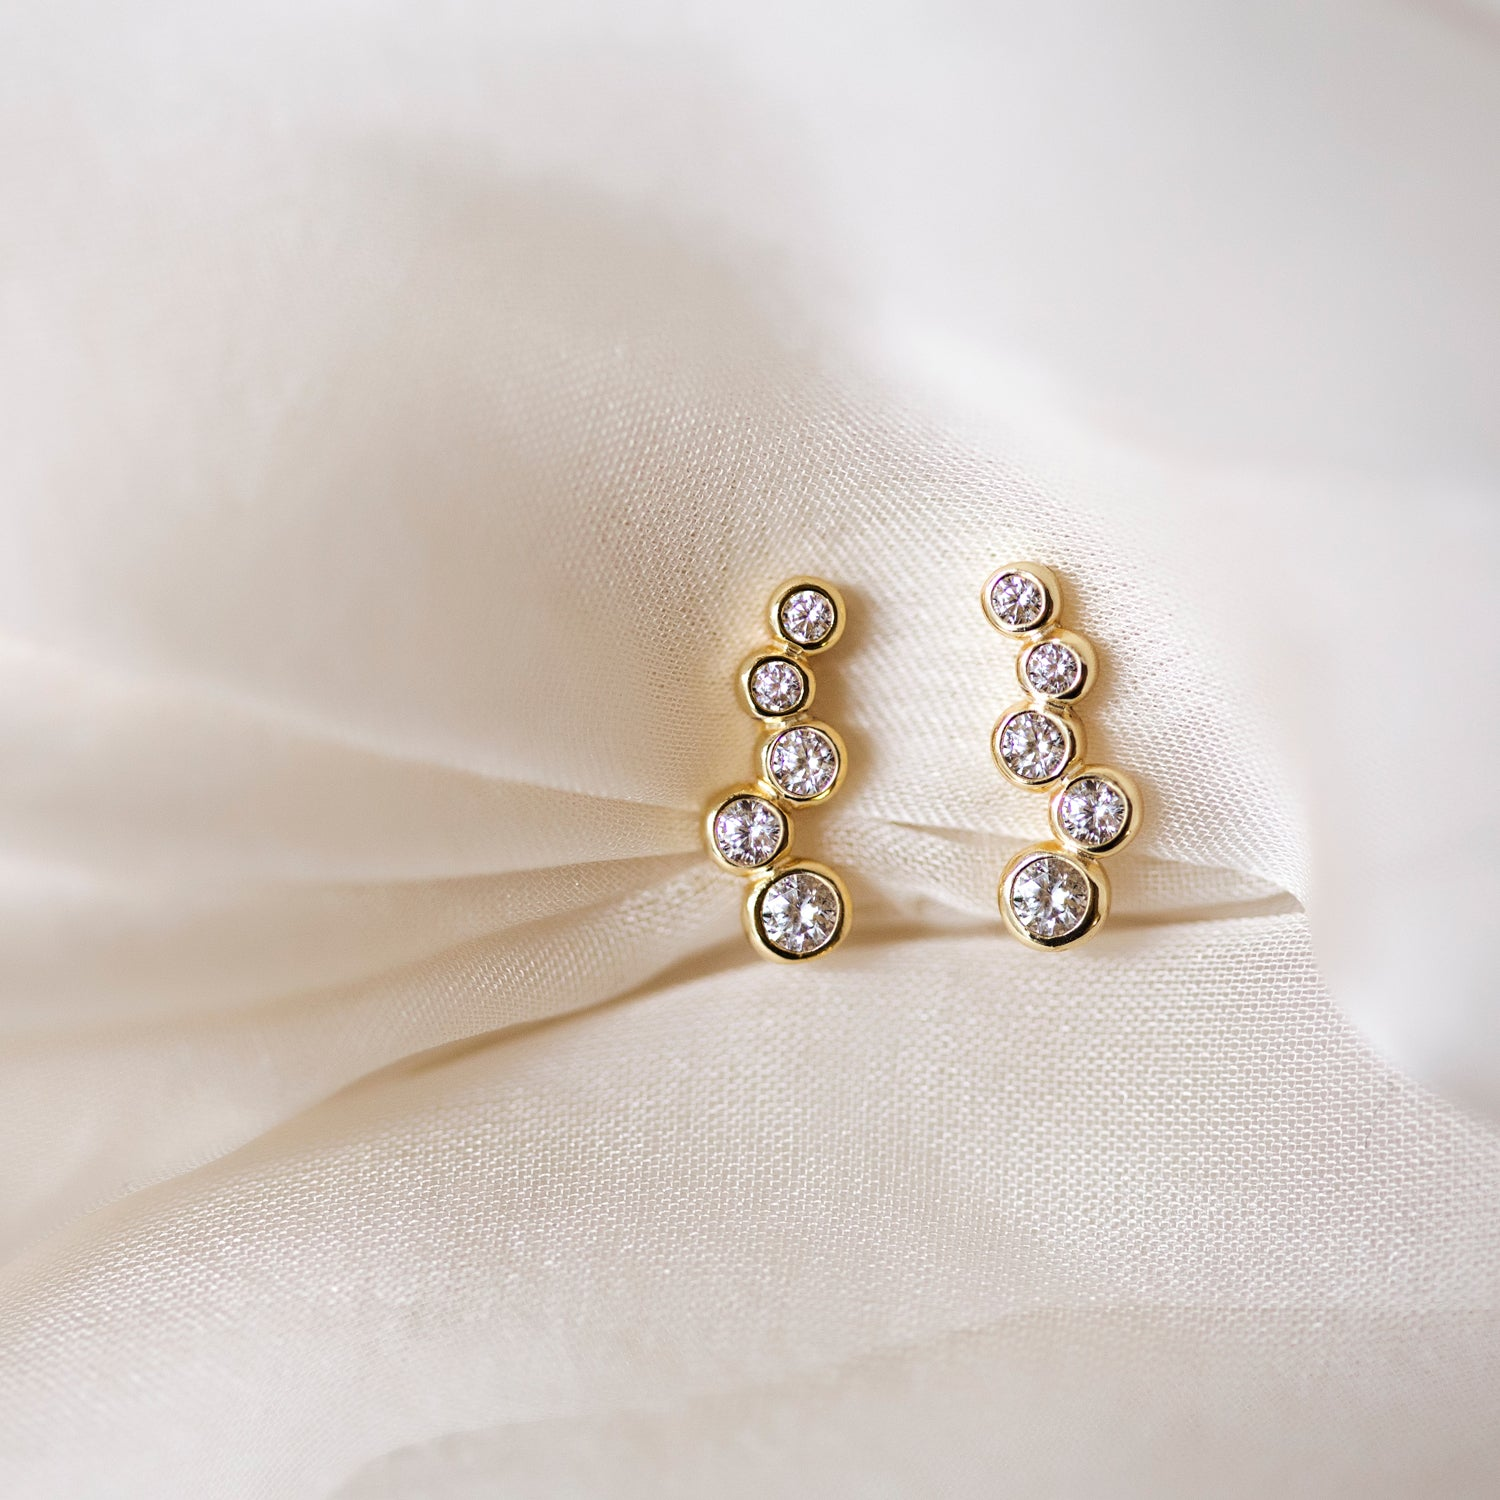 Pave Cluster Ear Climbers, Earrings - AMY O. Jewelry